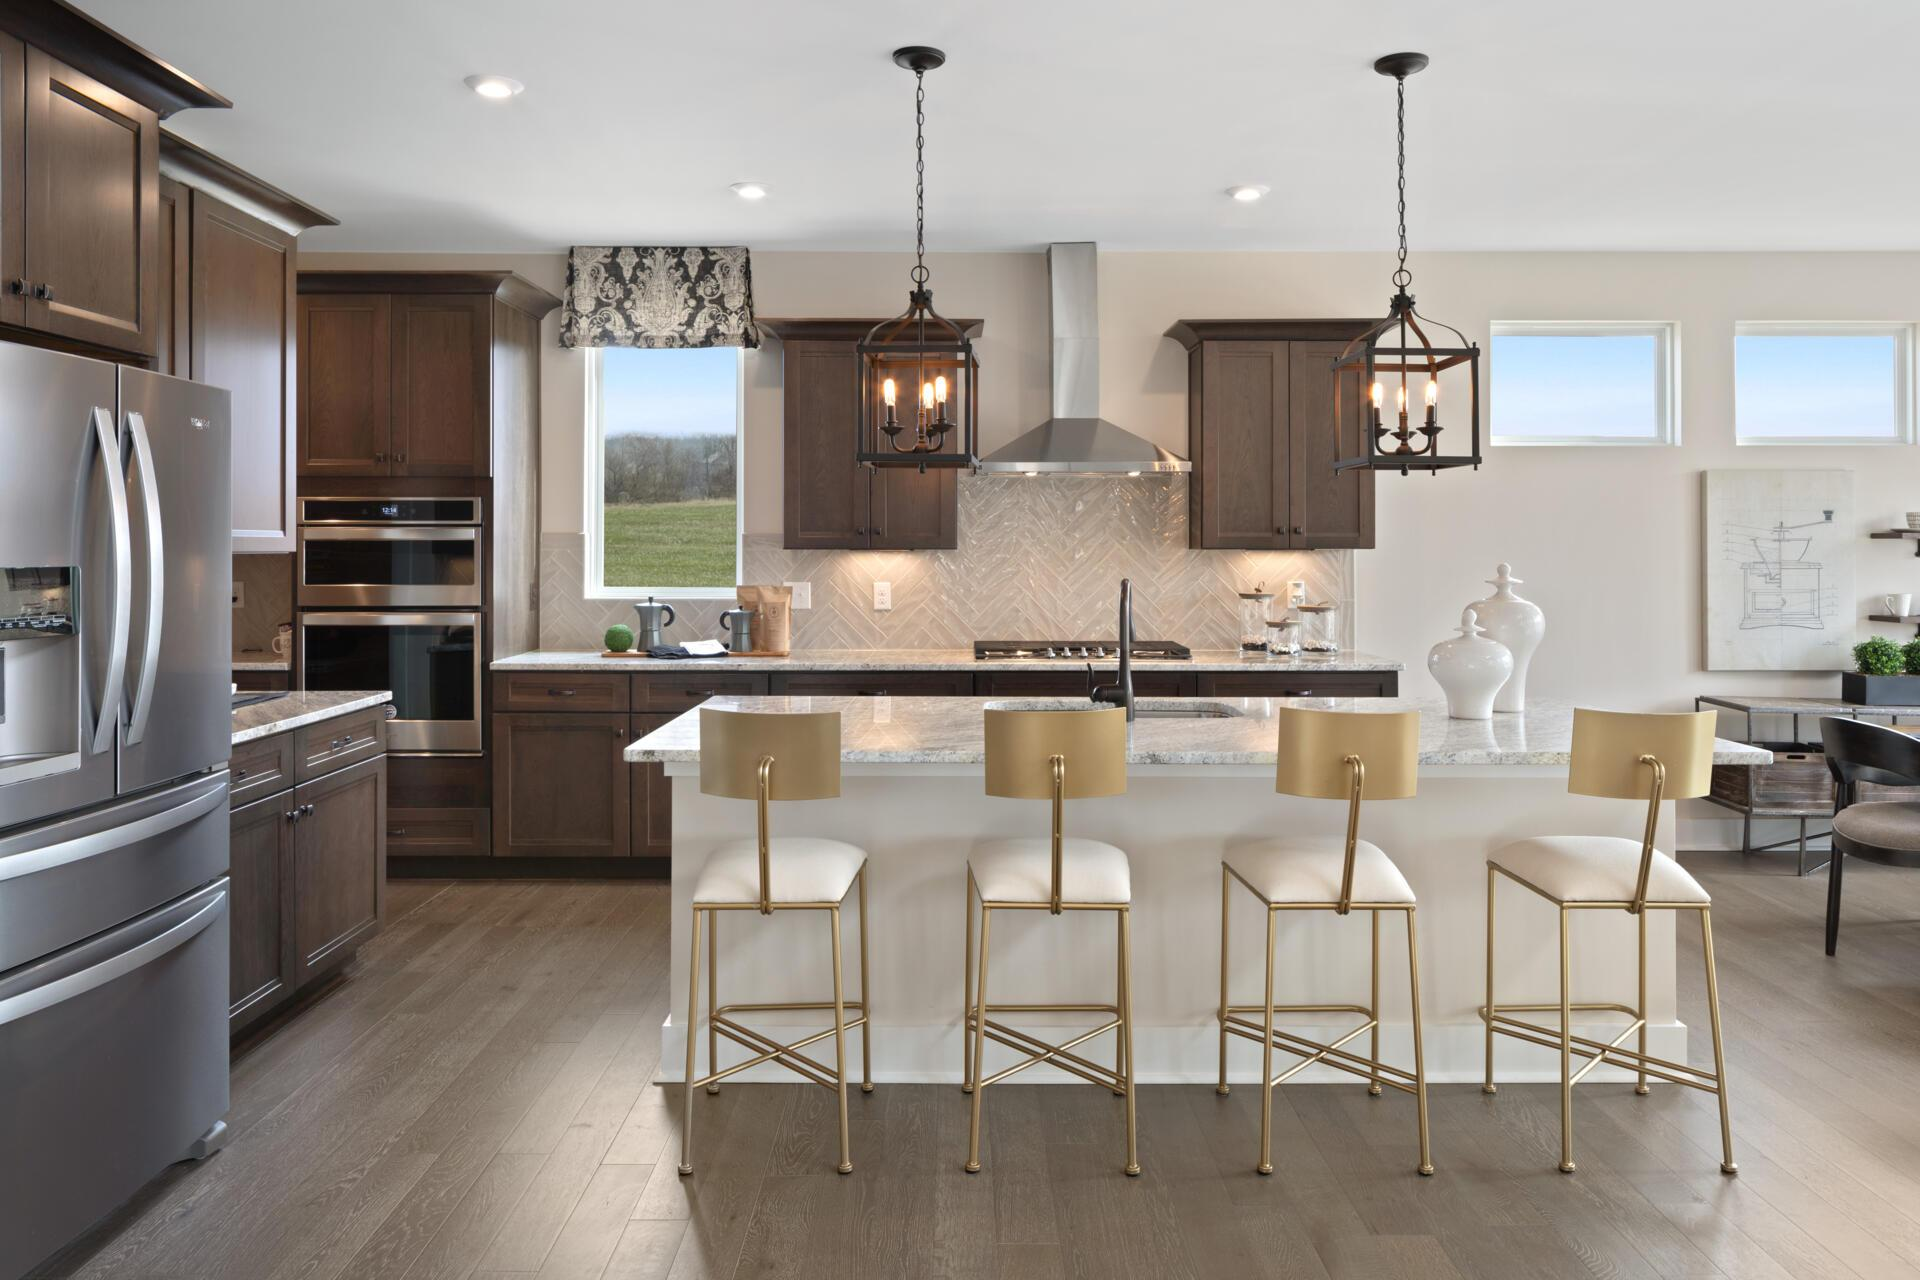 Kitchen featured in the Bennett By Drees Homes in Cincinnati, OH